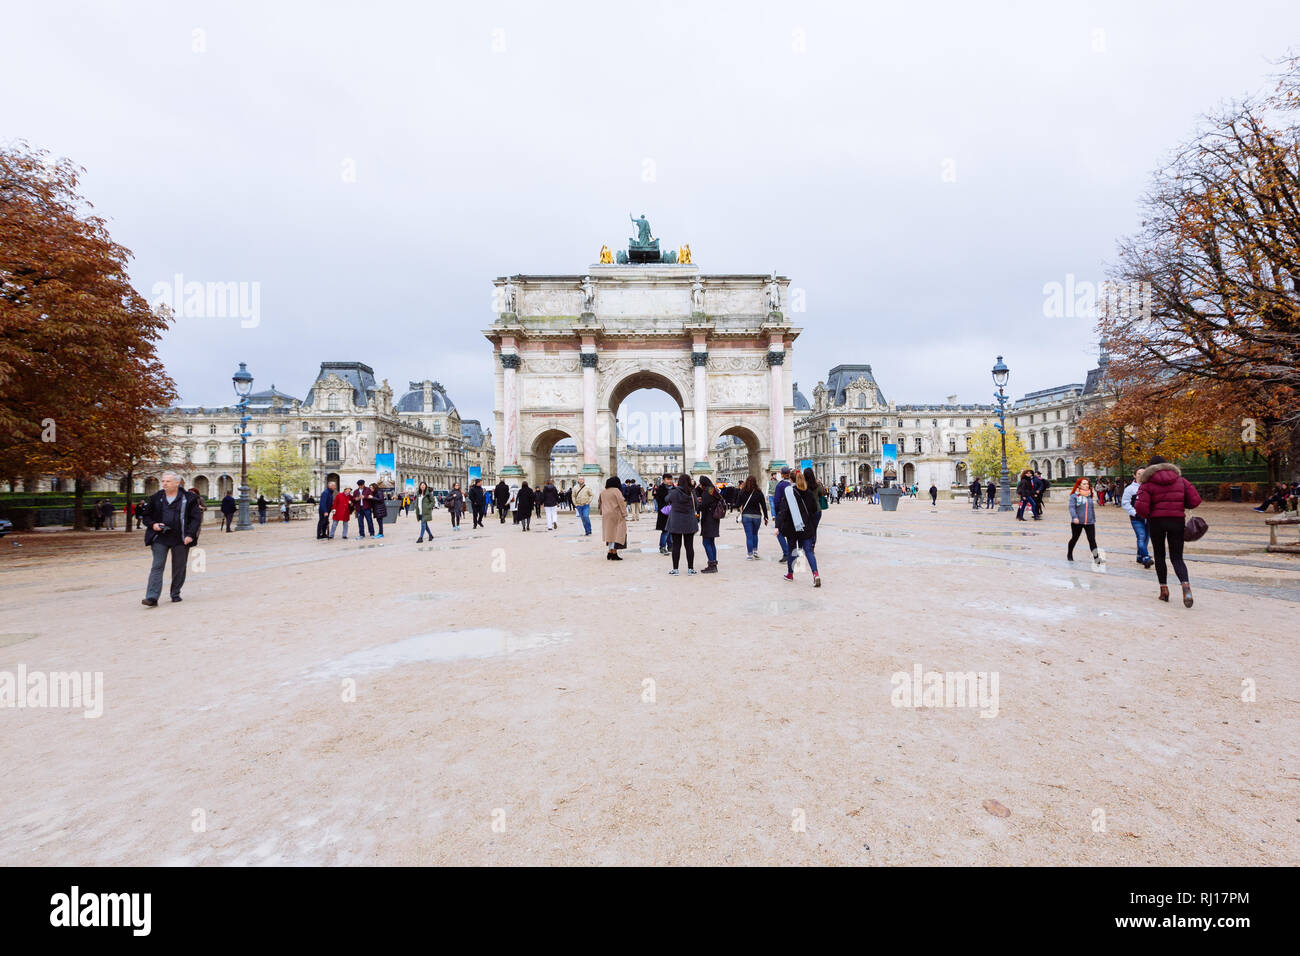 PARIS, FRANCE - NOVEMBER 10, 2018 - View of famous Arc de Triomphe du Carrousel against the background of the Louvre Museum in Paris Stock Photo